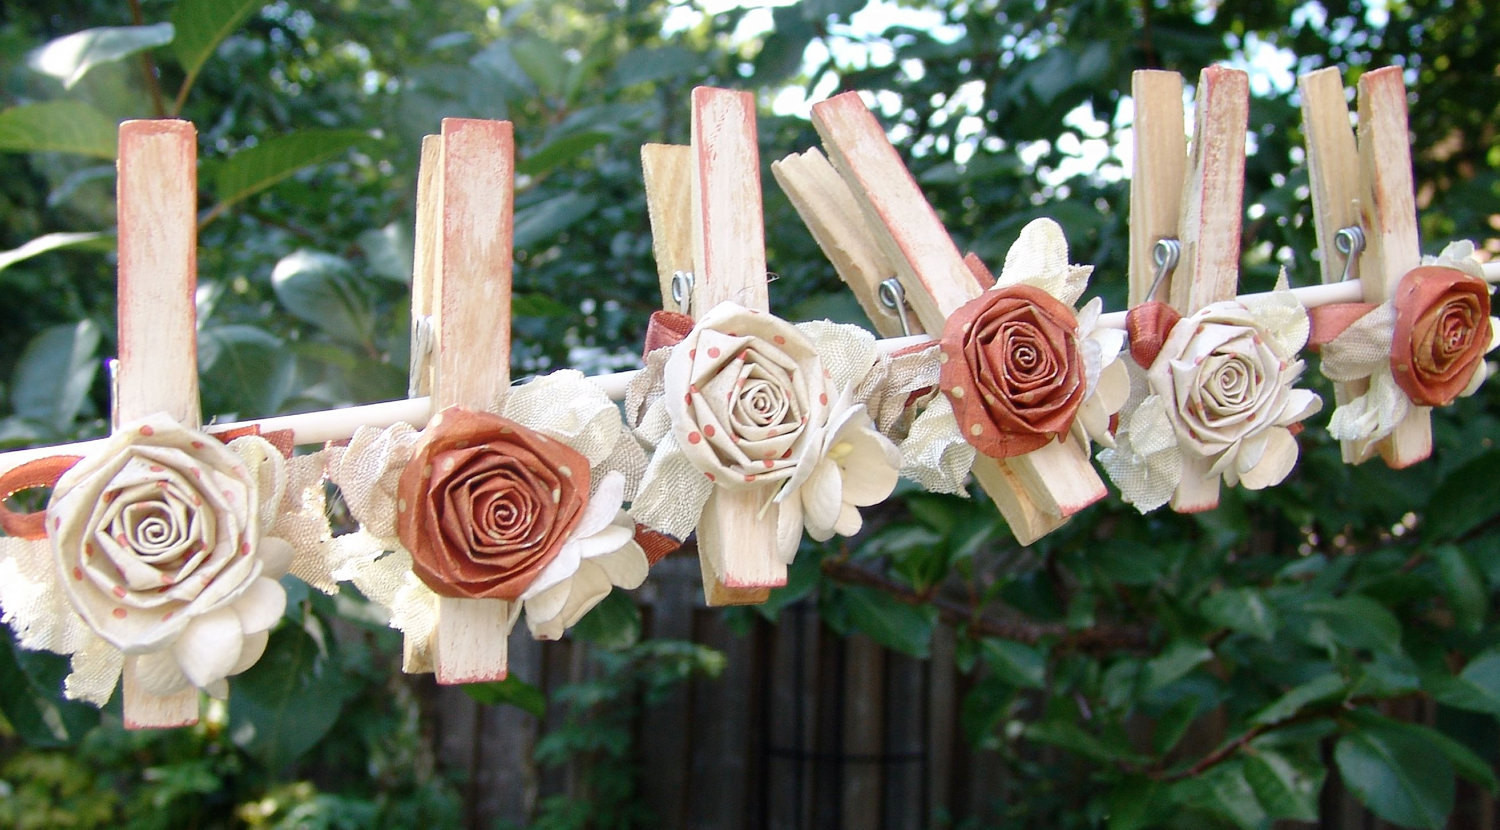 Shabby Chic Fall Decor  Shabby Chic Autumn Wedding Decorations decorated Clothes Pins